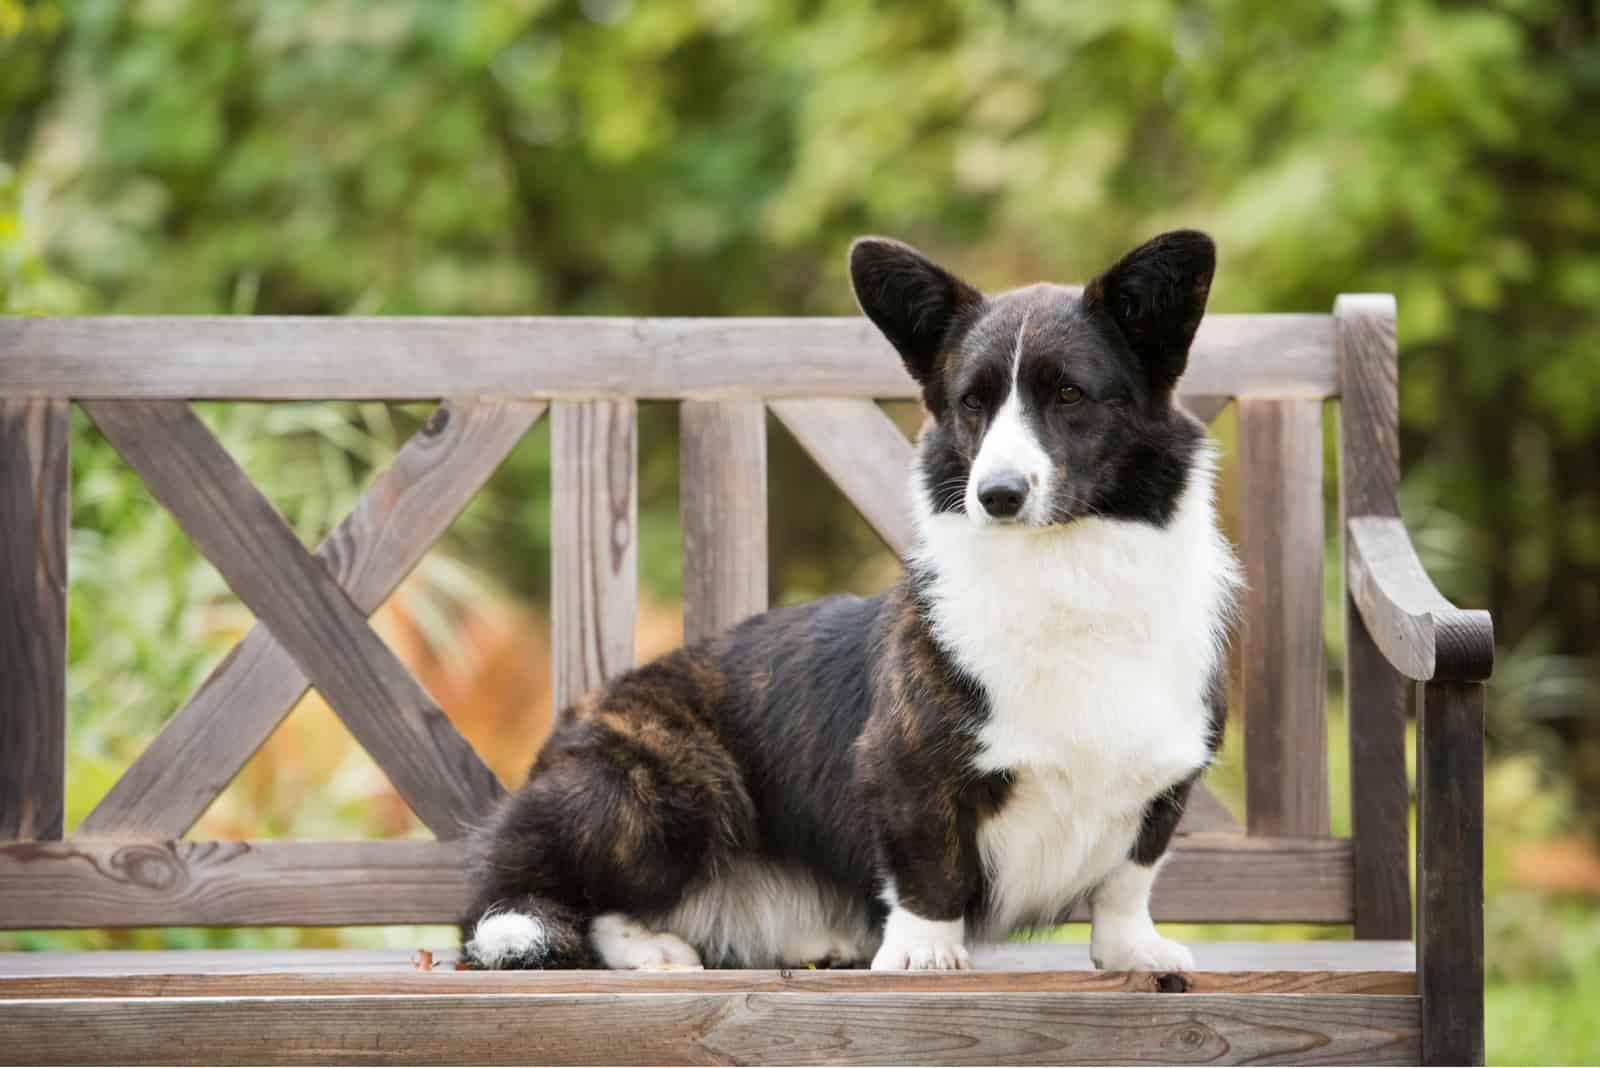 Welsh corgi cardigan sits on the bench in the yard